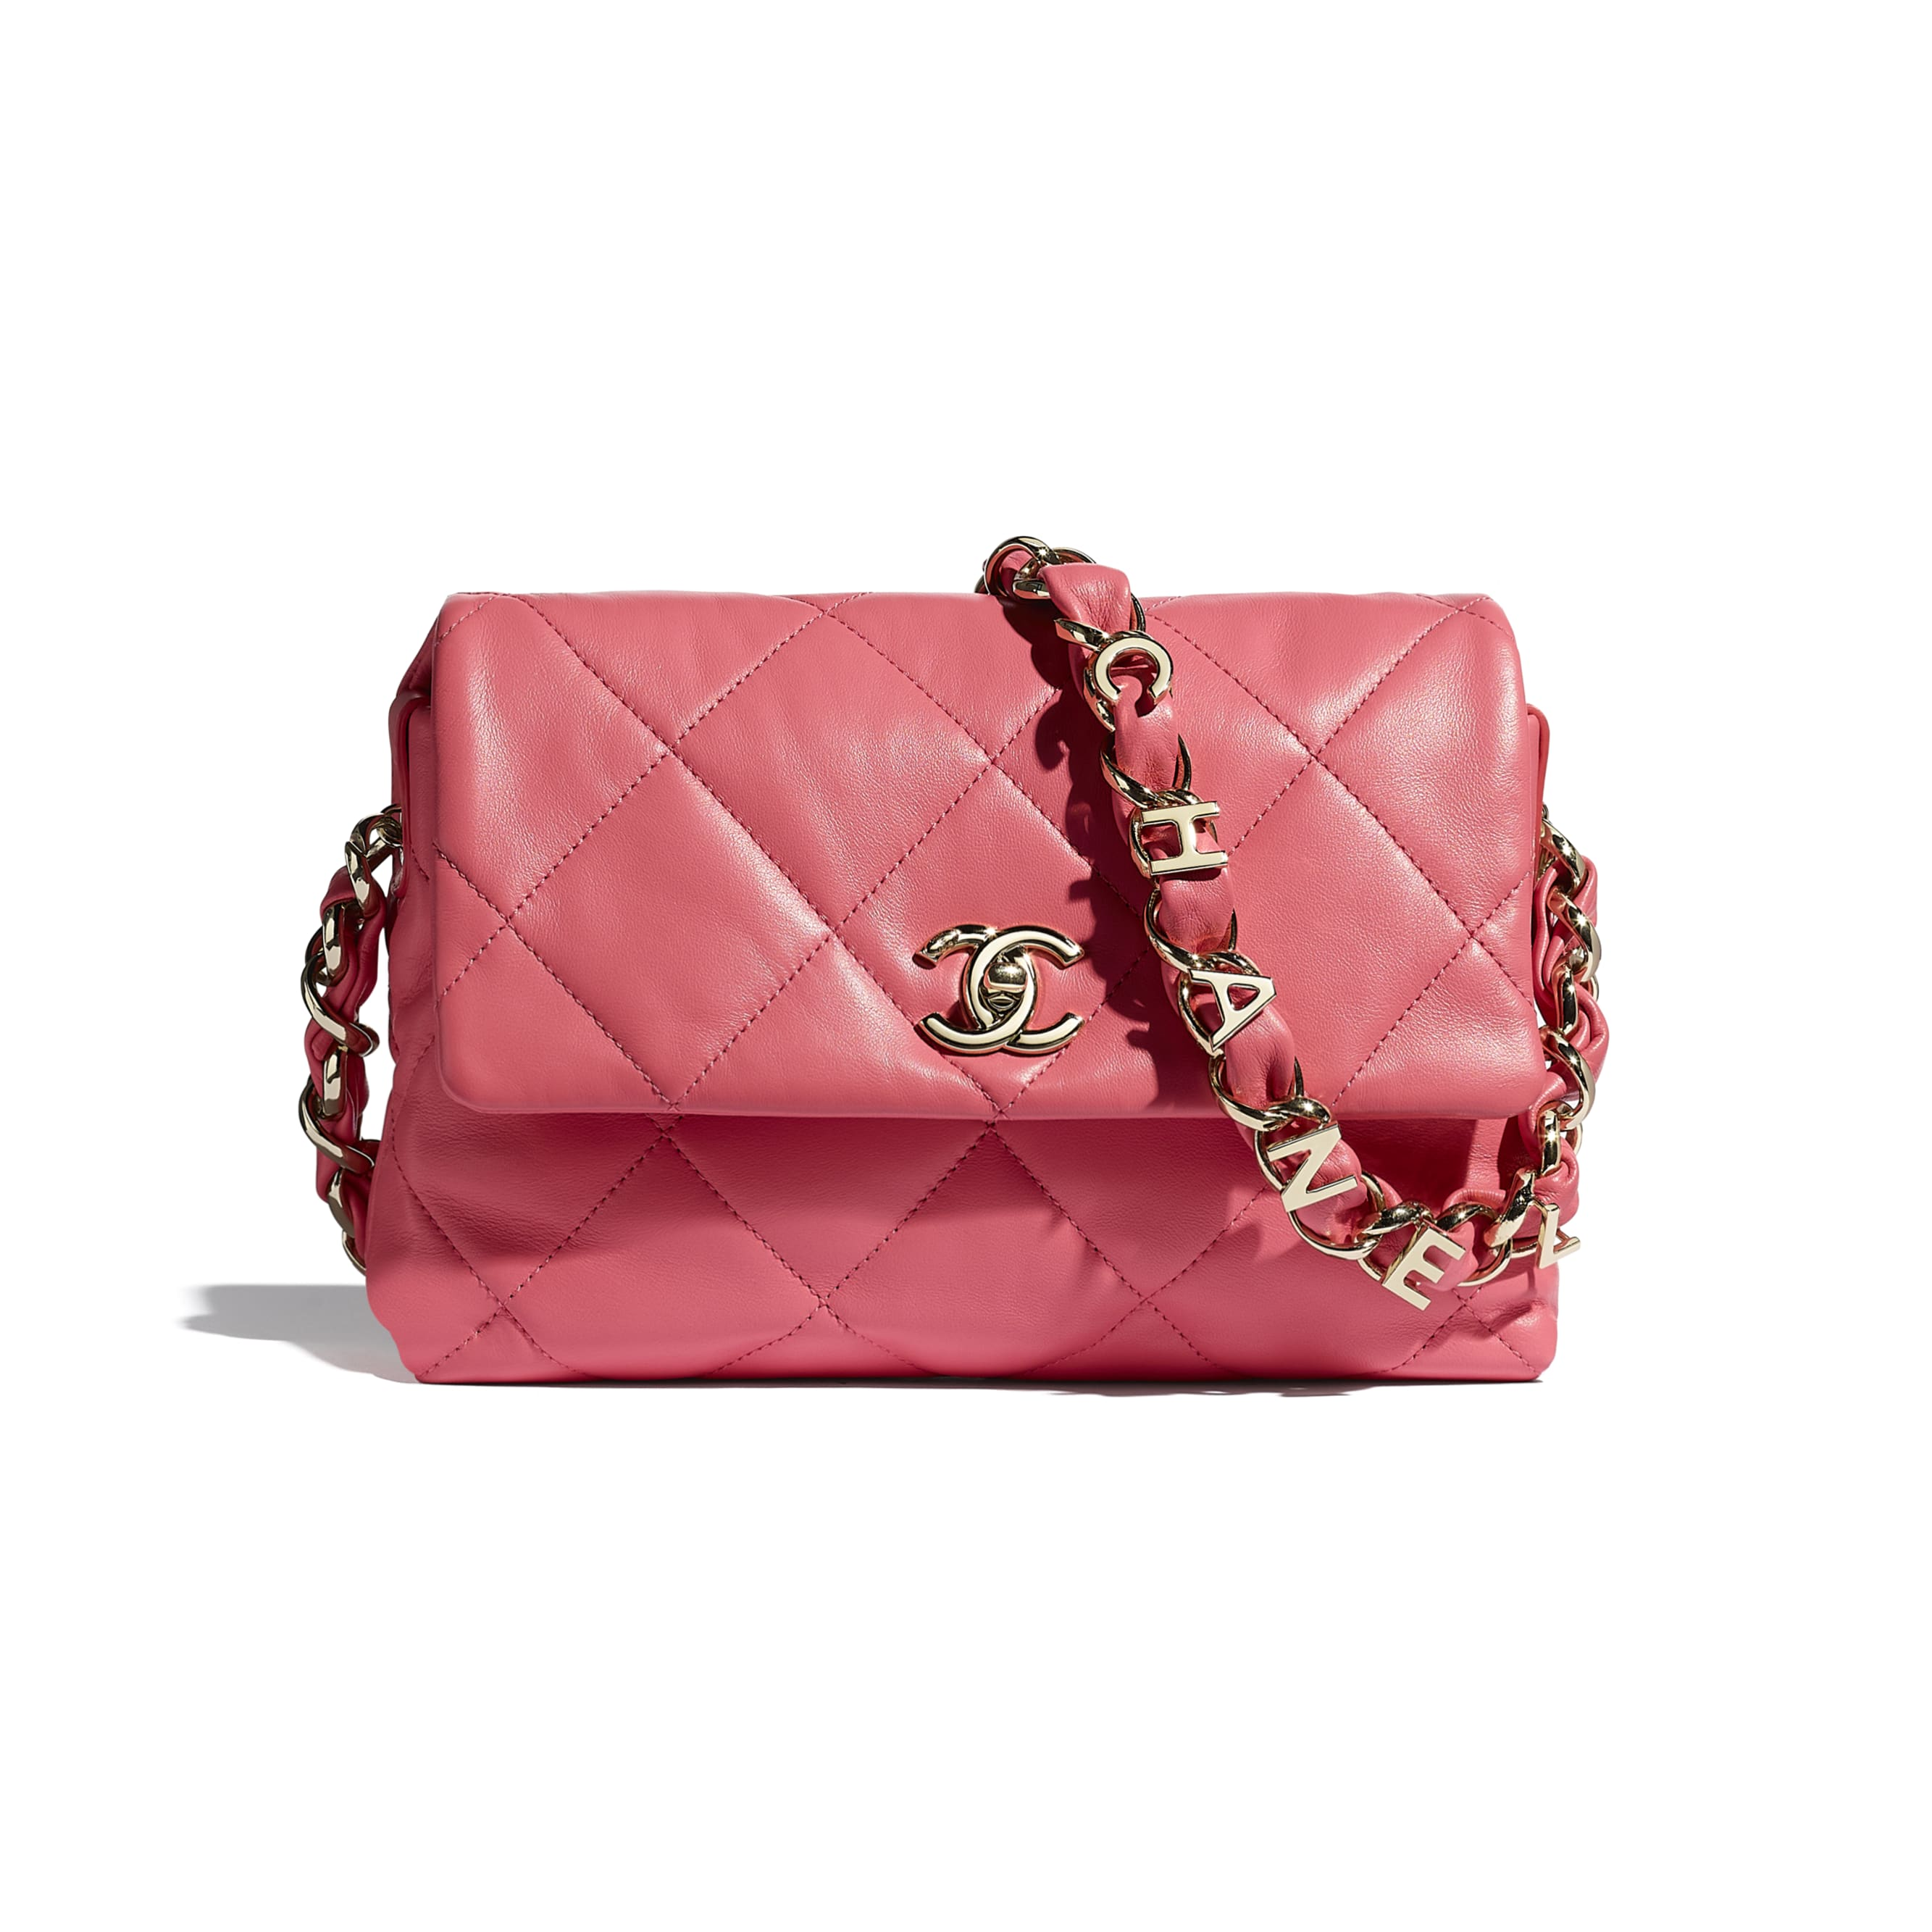 Small Flap Bag - Coral - Lambskin - CHANEL - Default view - see standard sized version